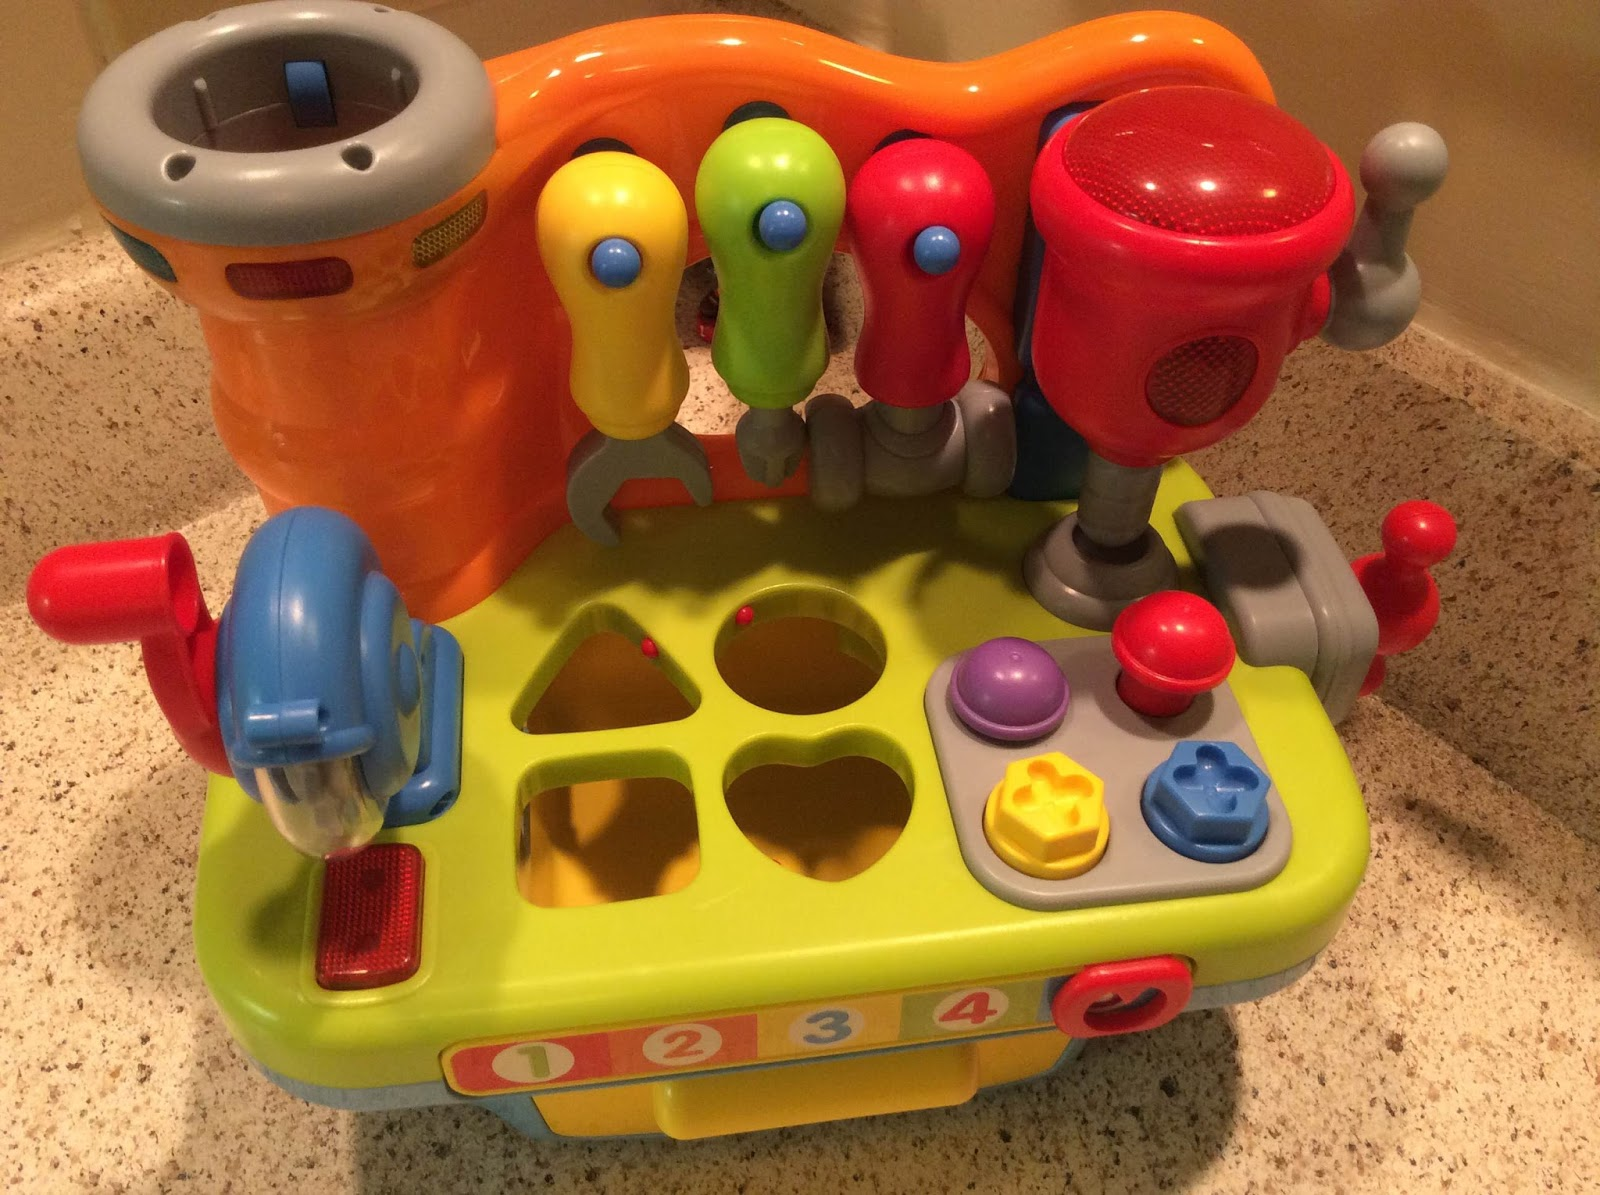 Toys For Kids 4 5 : Whatrinaloves techege toys review tool truck multi